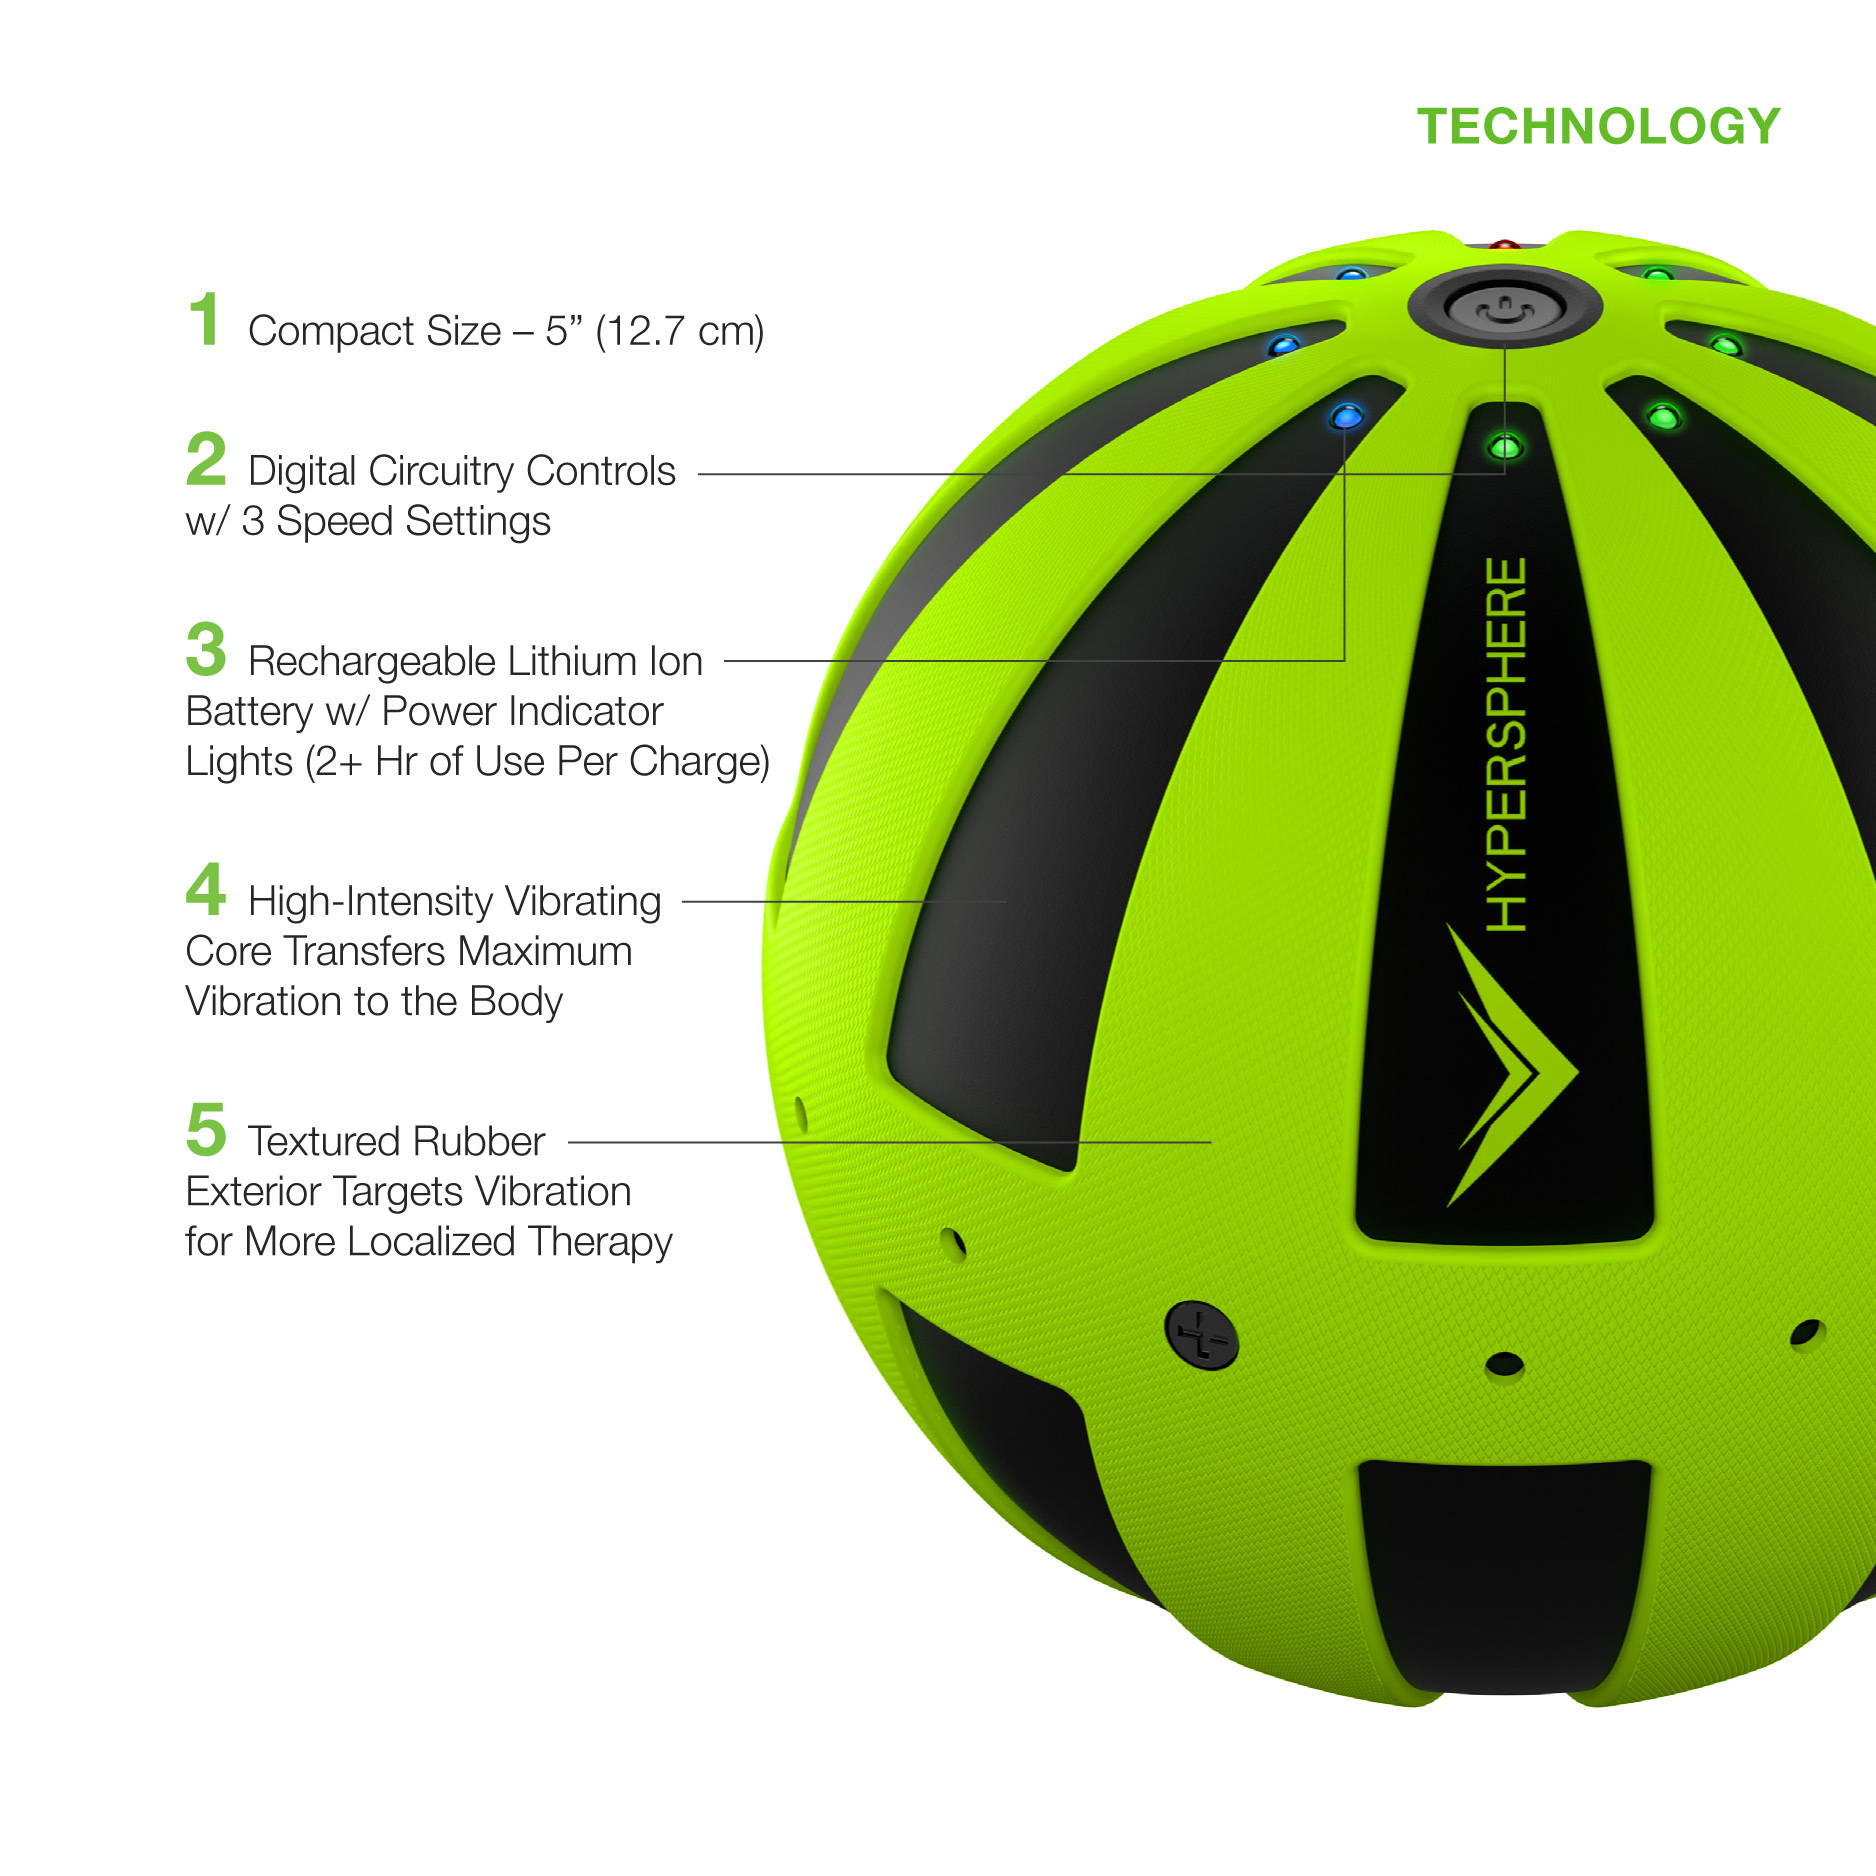 Green Hyperice Hypersphere Parts